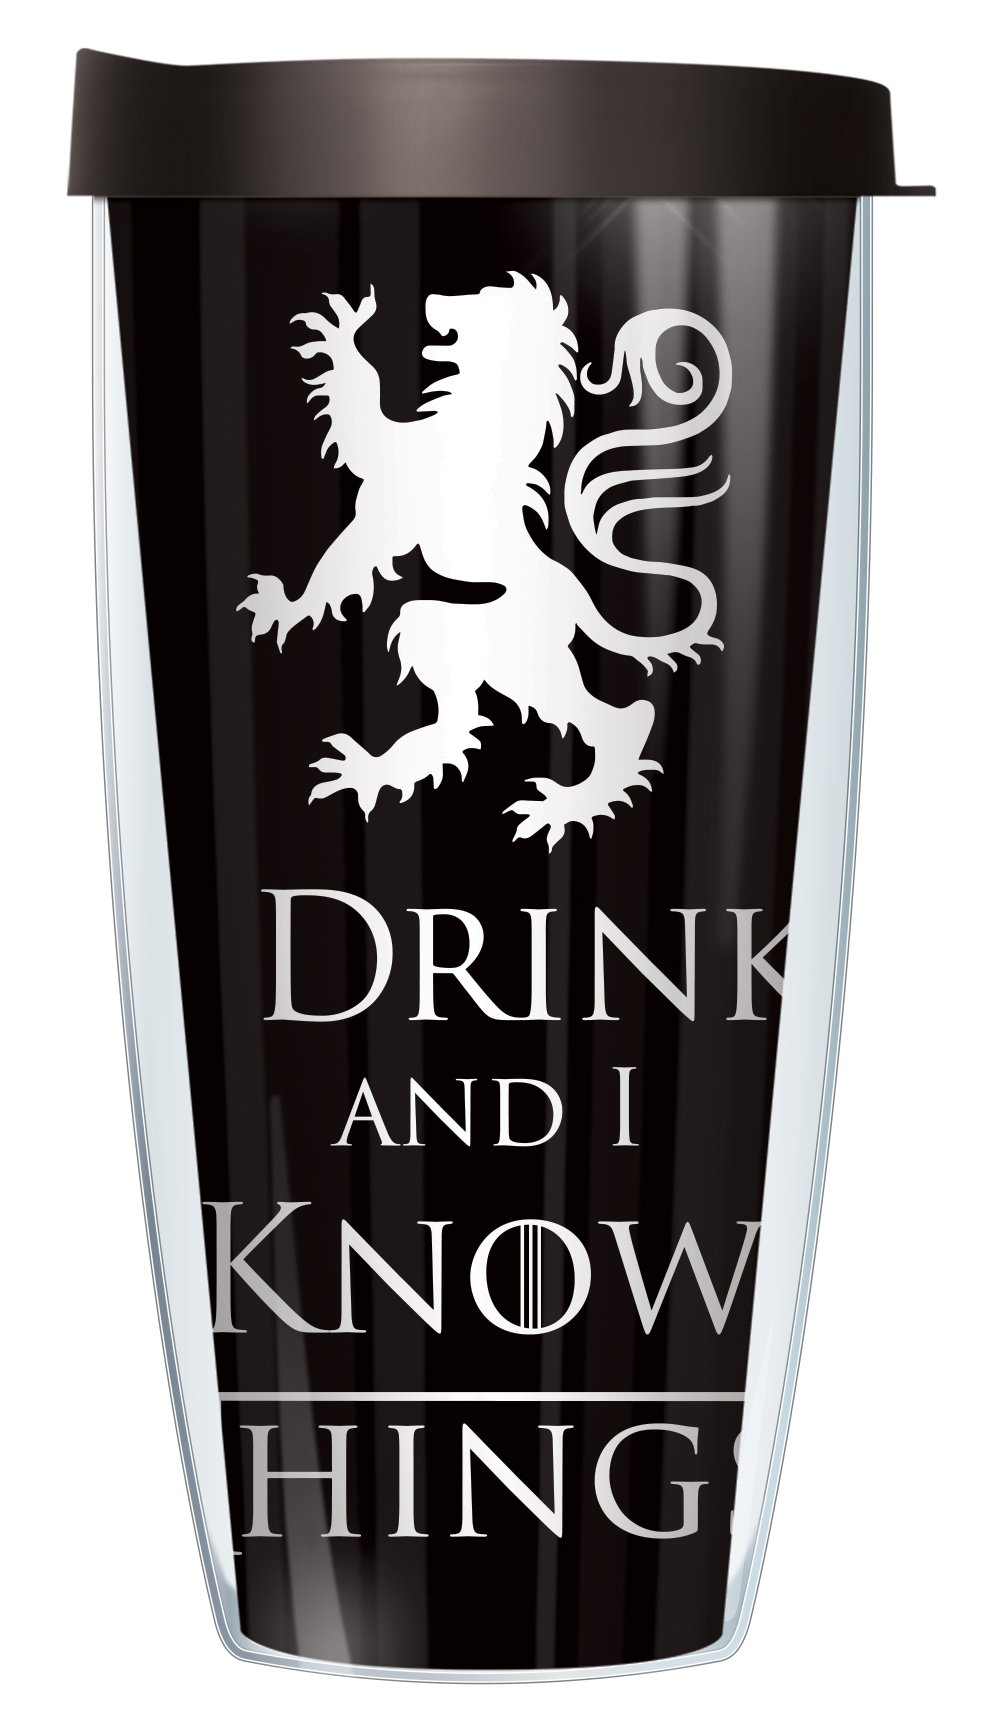 I Drink and I Know Things Funny 22oz Mug Tumbler Cup with Black Lid